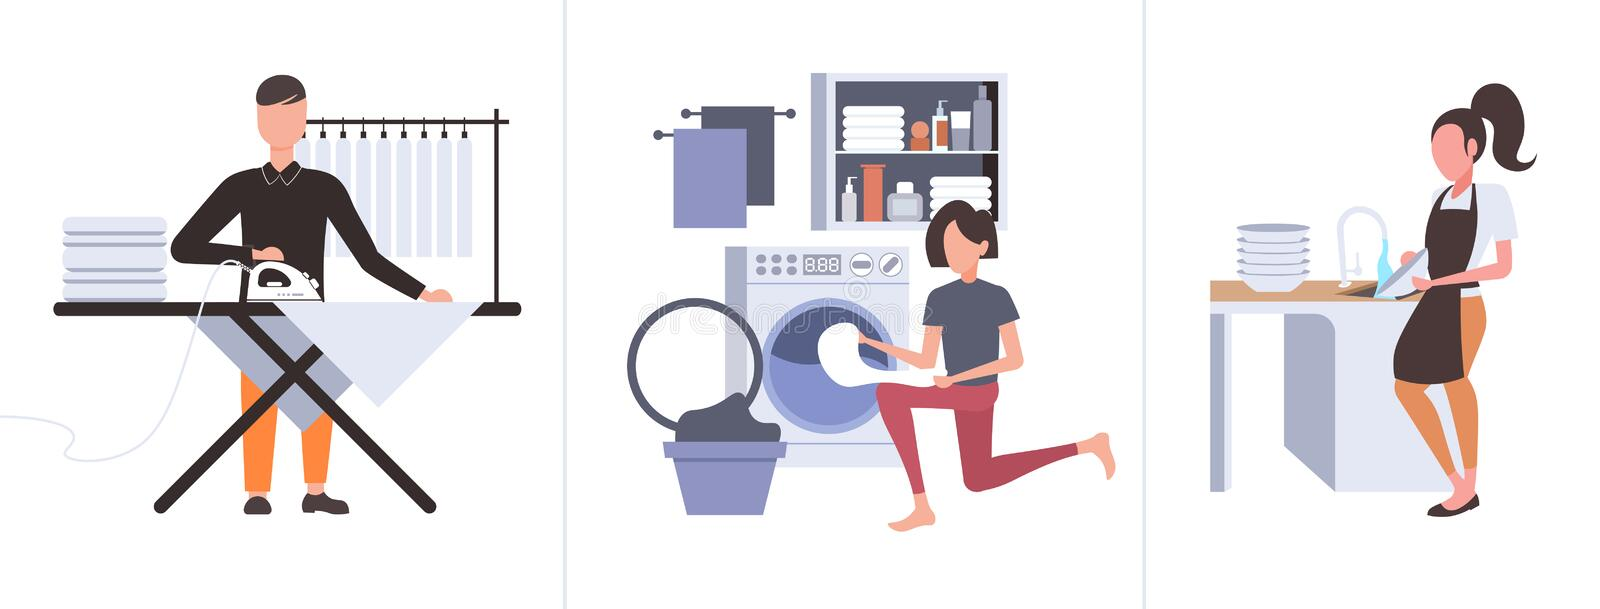 Set man ironing clothes woman putting dirty clothes into washing machine doing housework different housekeeping vector illustration